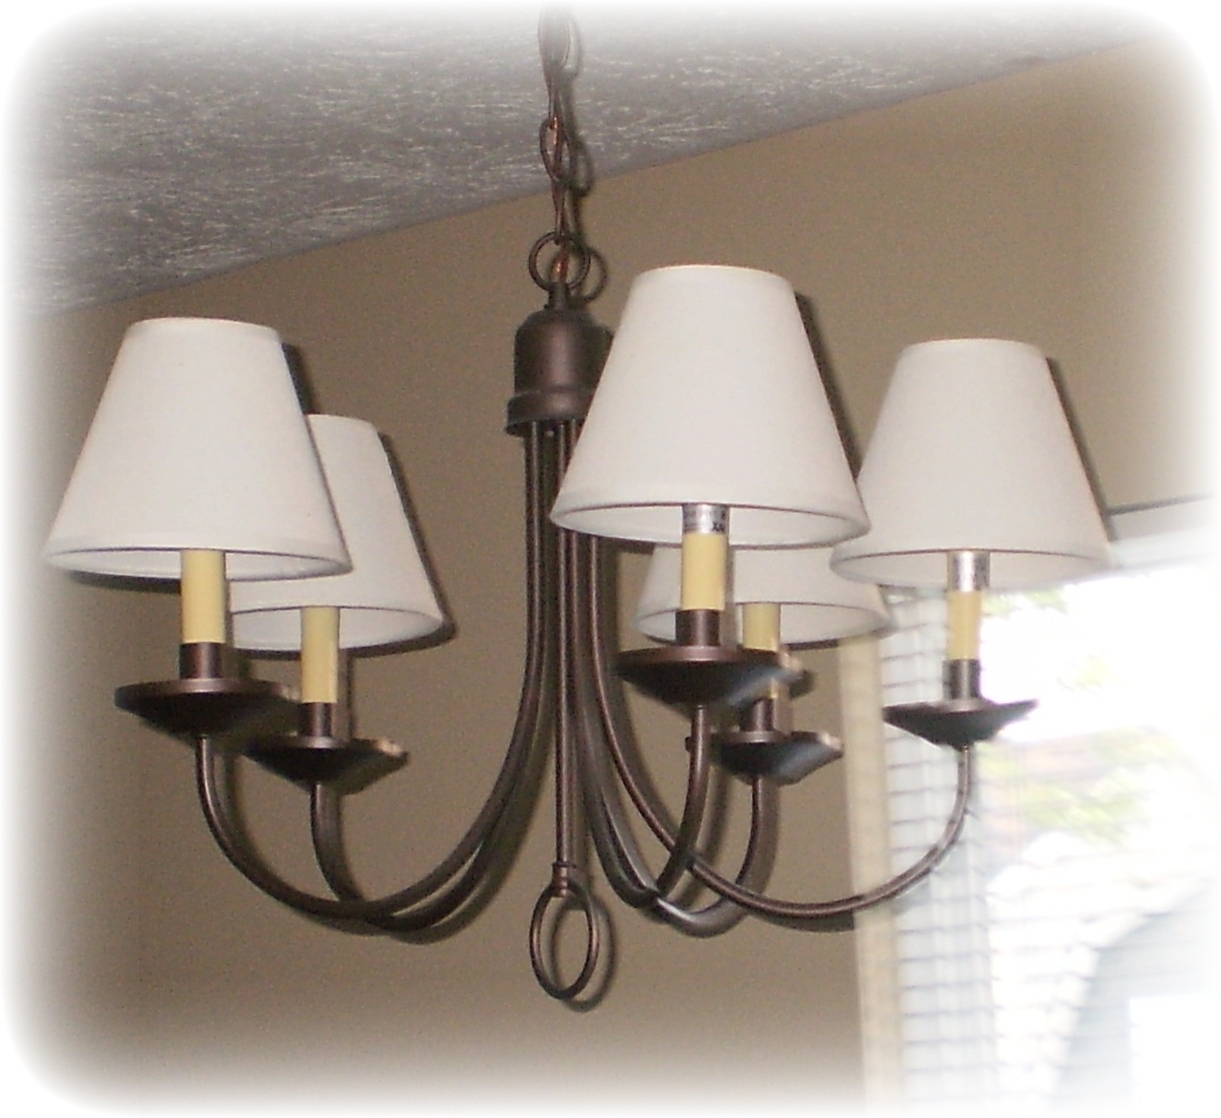 Chandelier Lamp Shades Throughout Preferred Furniture : Mini Chandelier Shades Discount Fabulous 8 Mini (View 4 of 20)